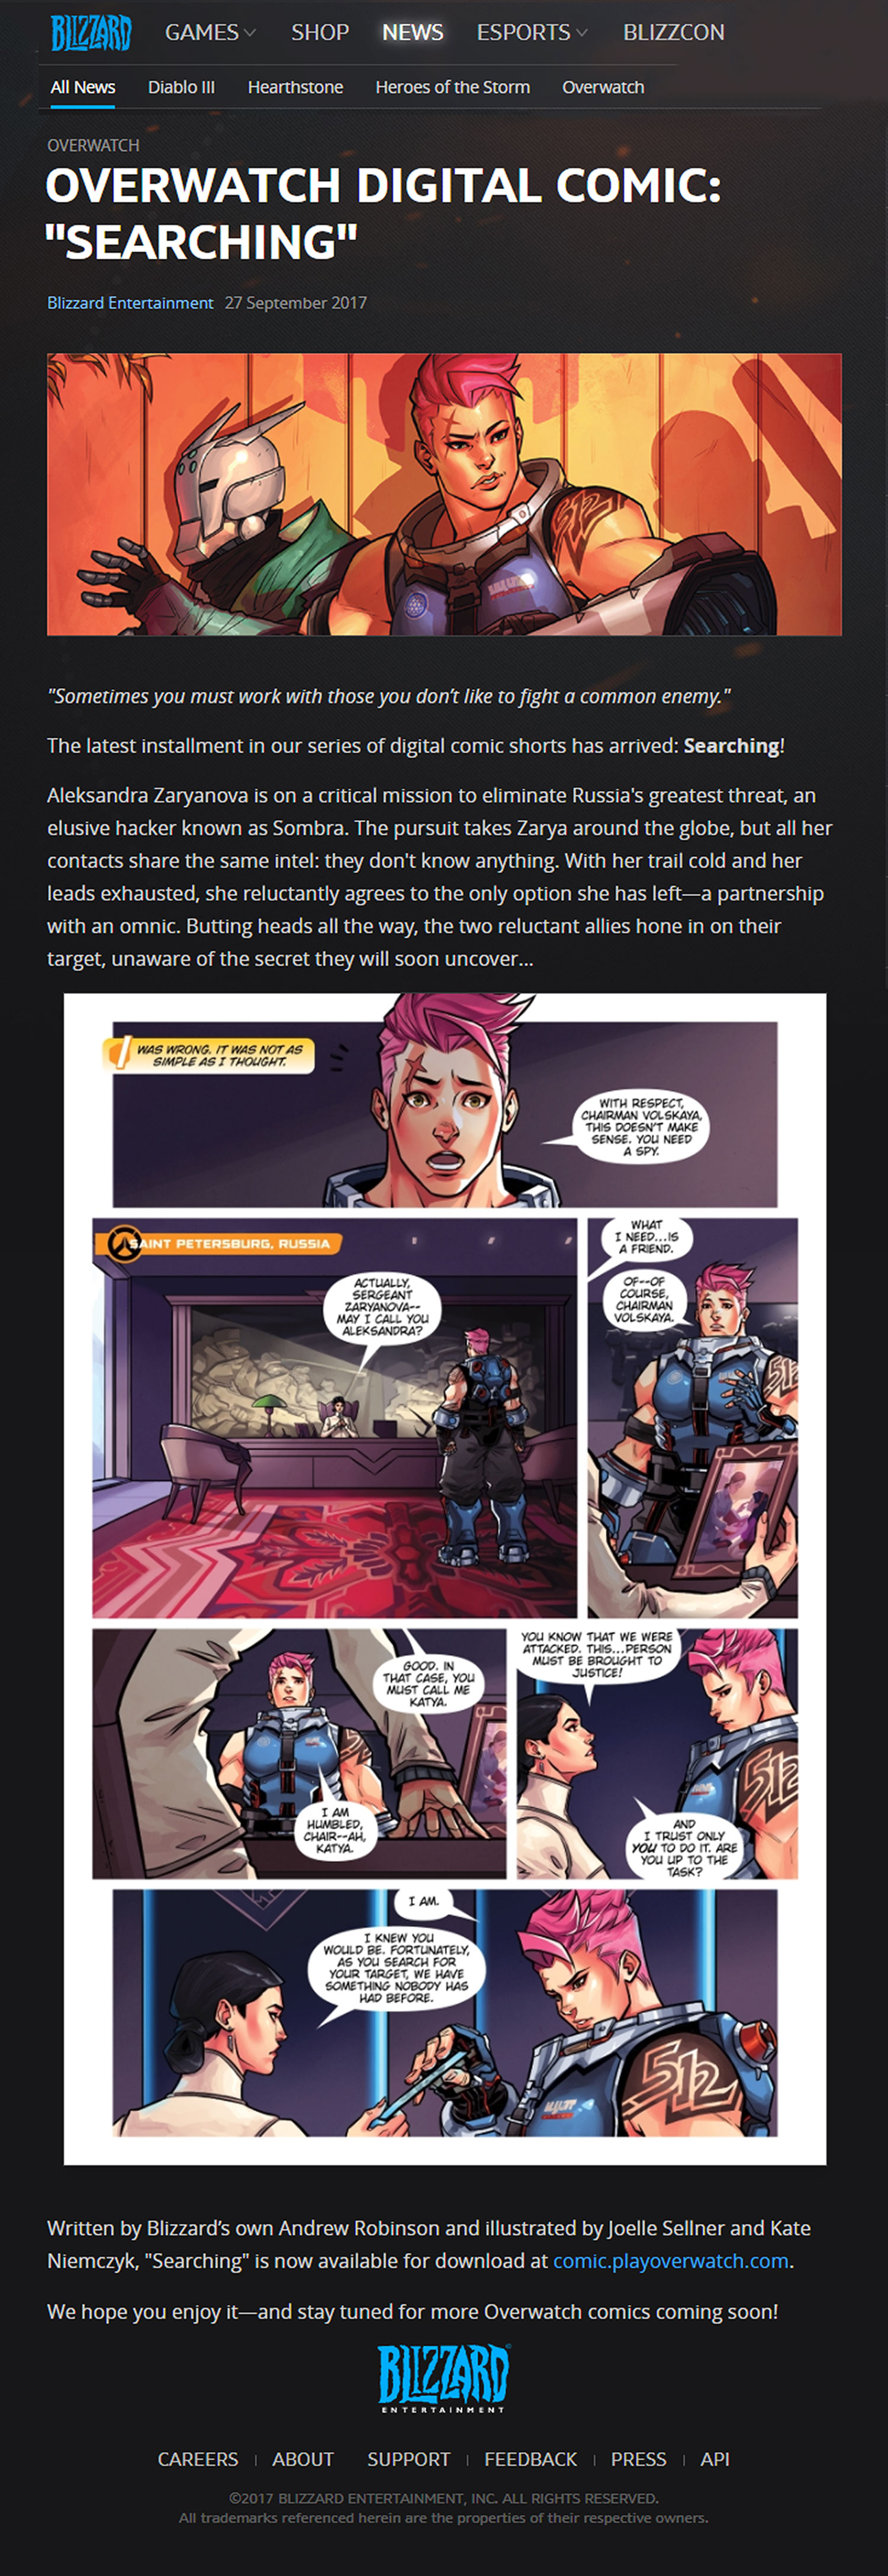 Aleksandra Overwatch joelle sellner online portfolio - graphic novel - overwatch